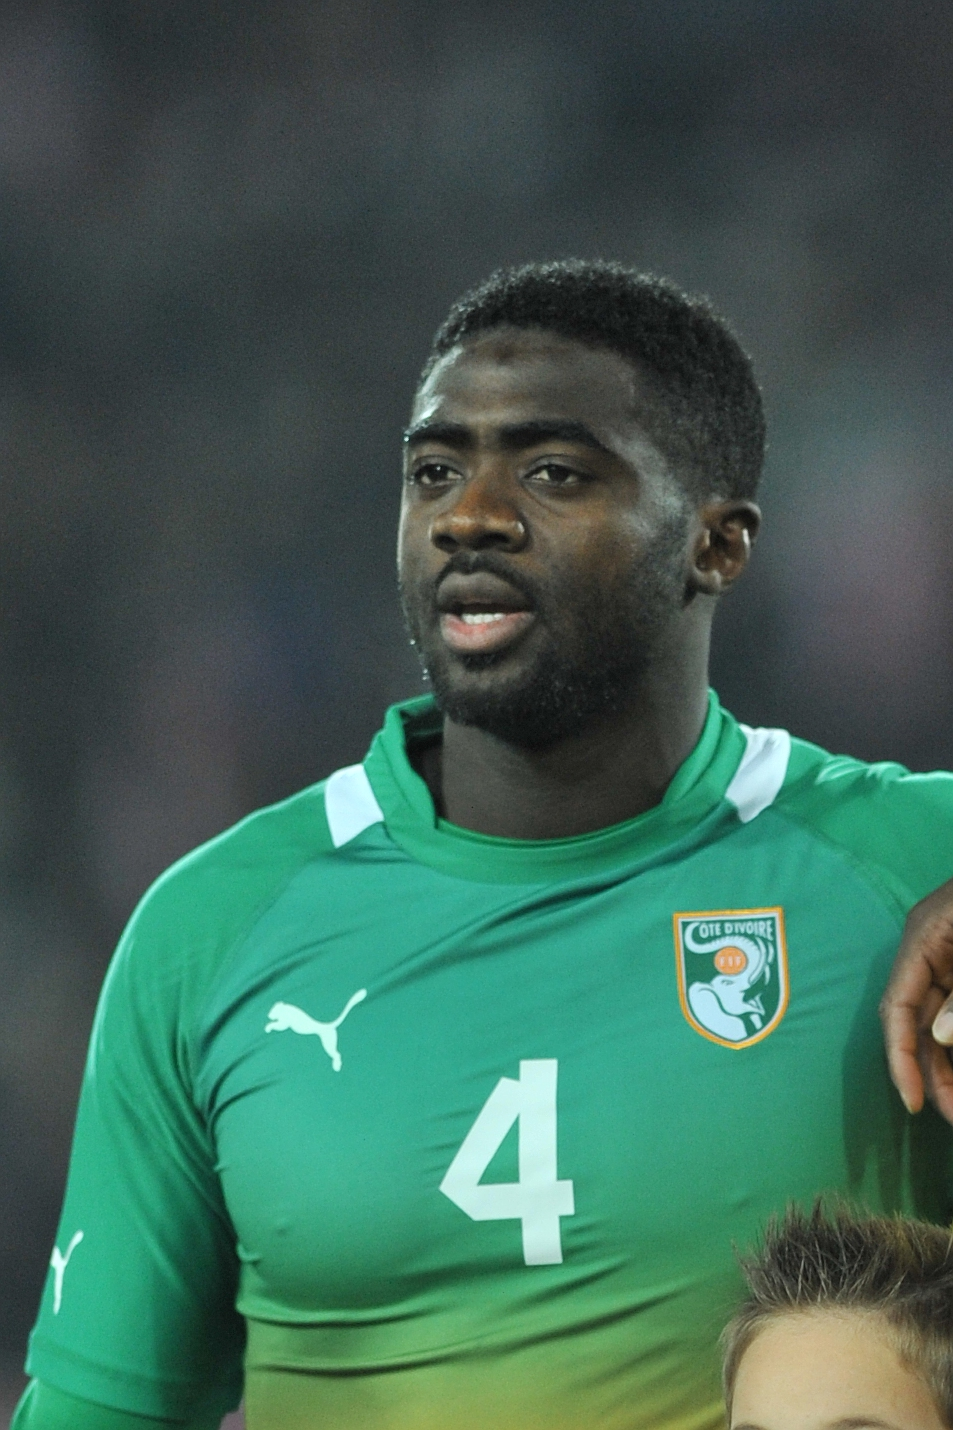 The 37-year old son of father Mory Touré and mother(?) Kolo Touré in 2018 photo. Kolo Touré earned a  million dollar salary - leaving the net worth at 10 million in 2018